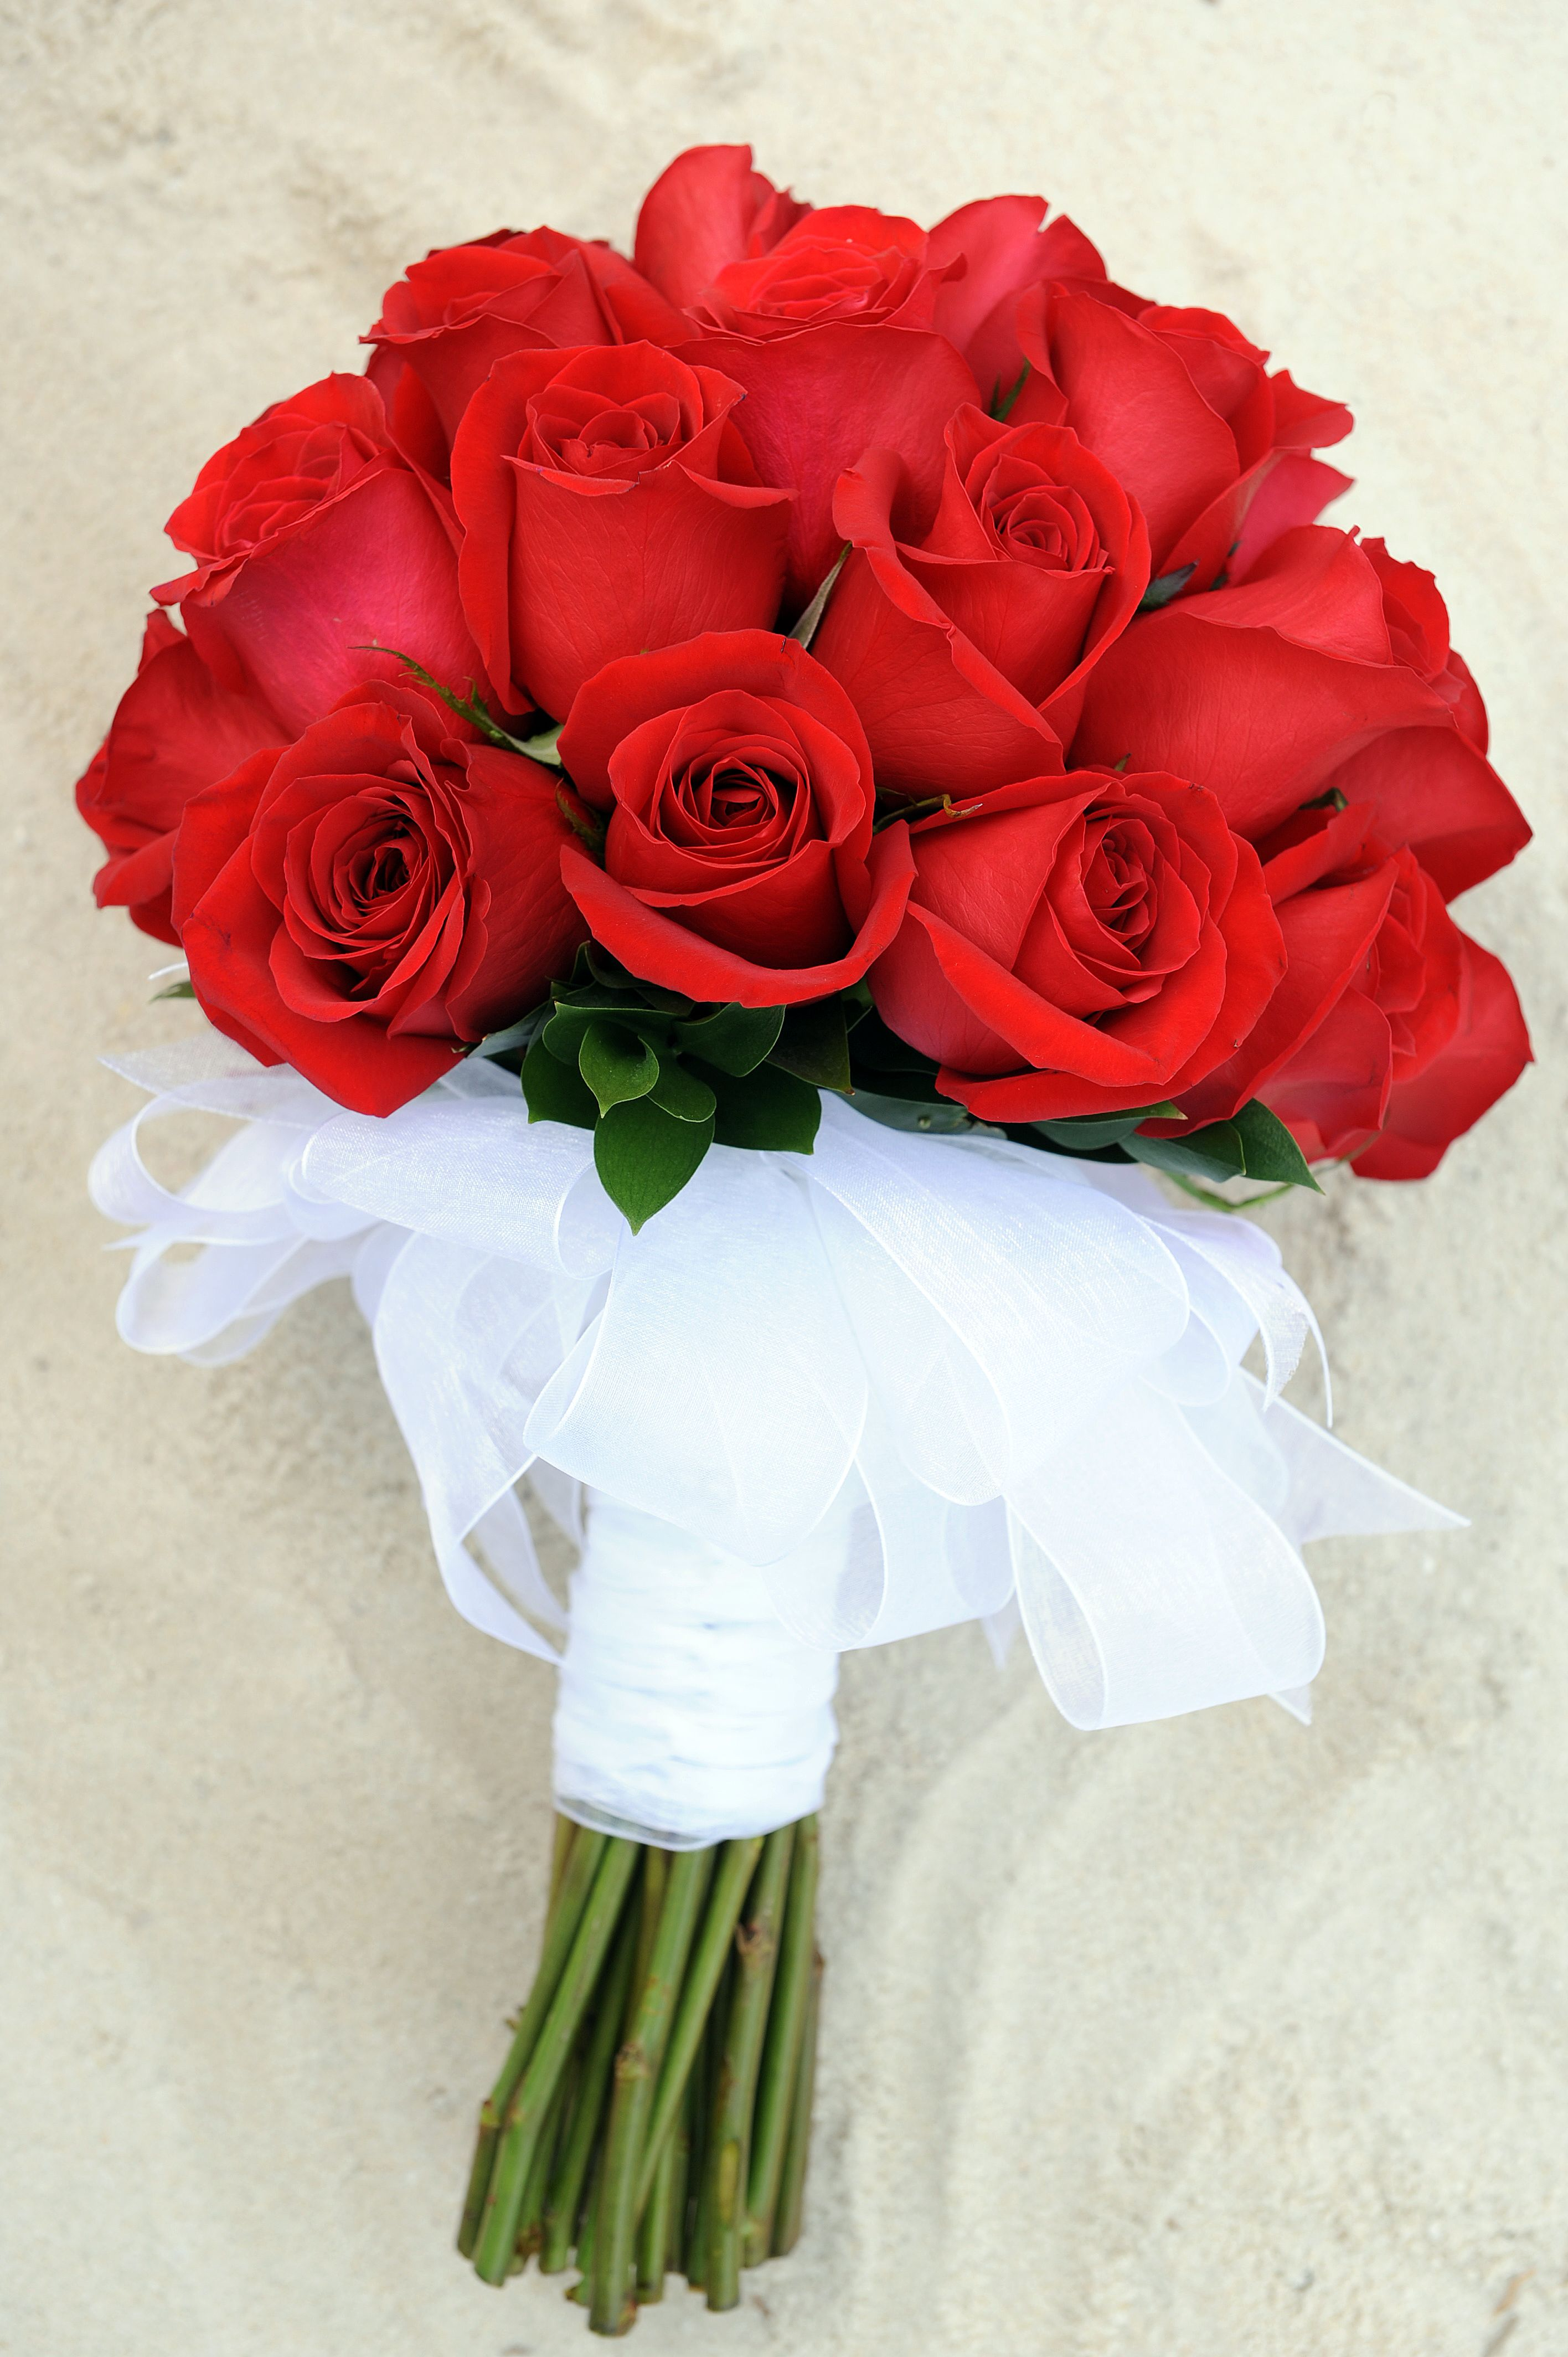 Solid red rose bouquet with white ribbon stem wrapping ...